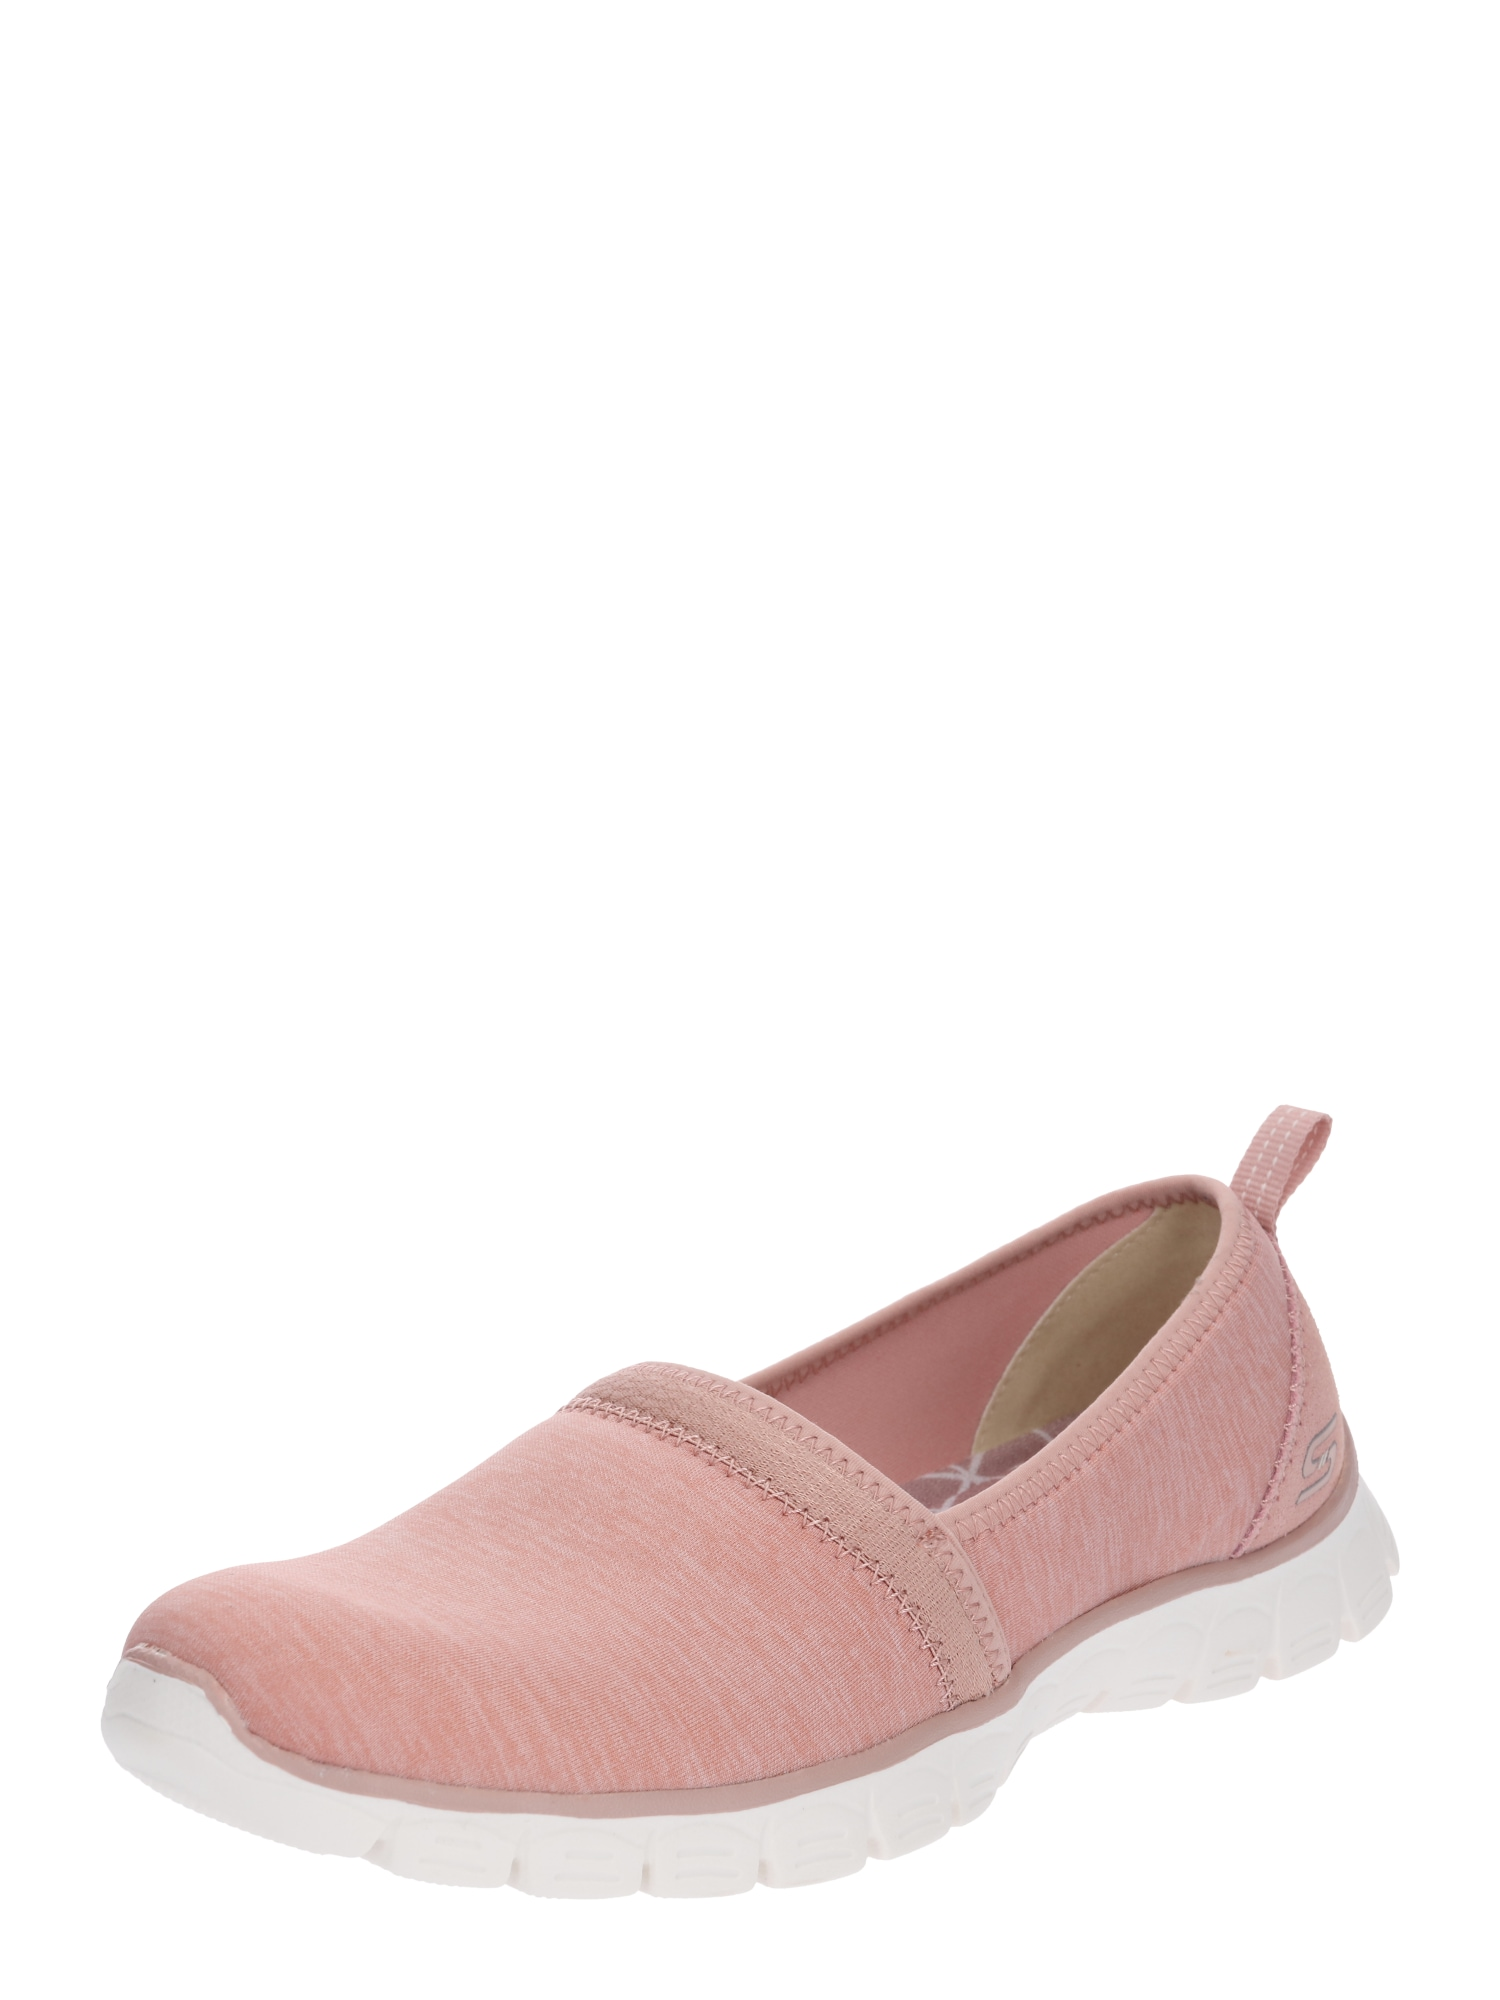 Slip on boty EZ FLEX 3.0 - SWIFT MOTION růžová SKECHERS